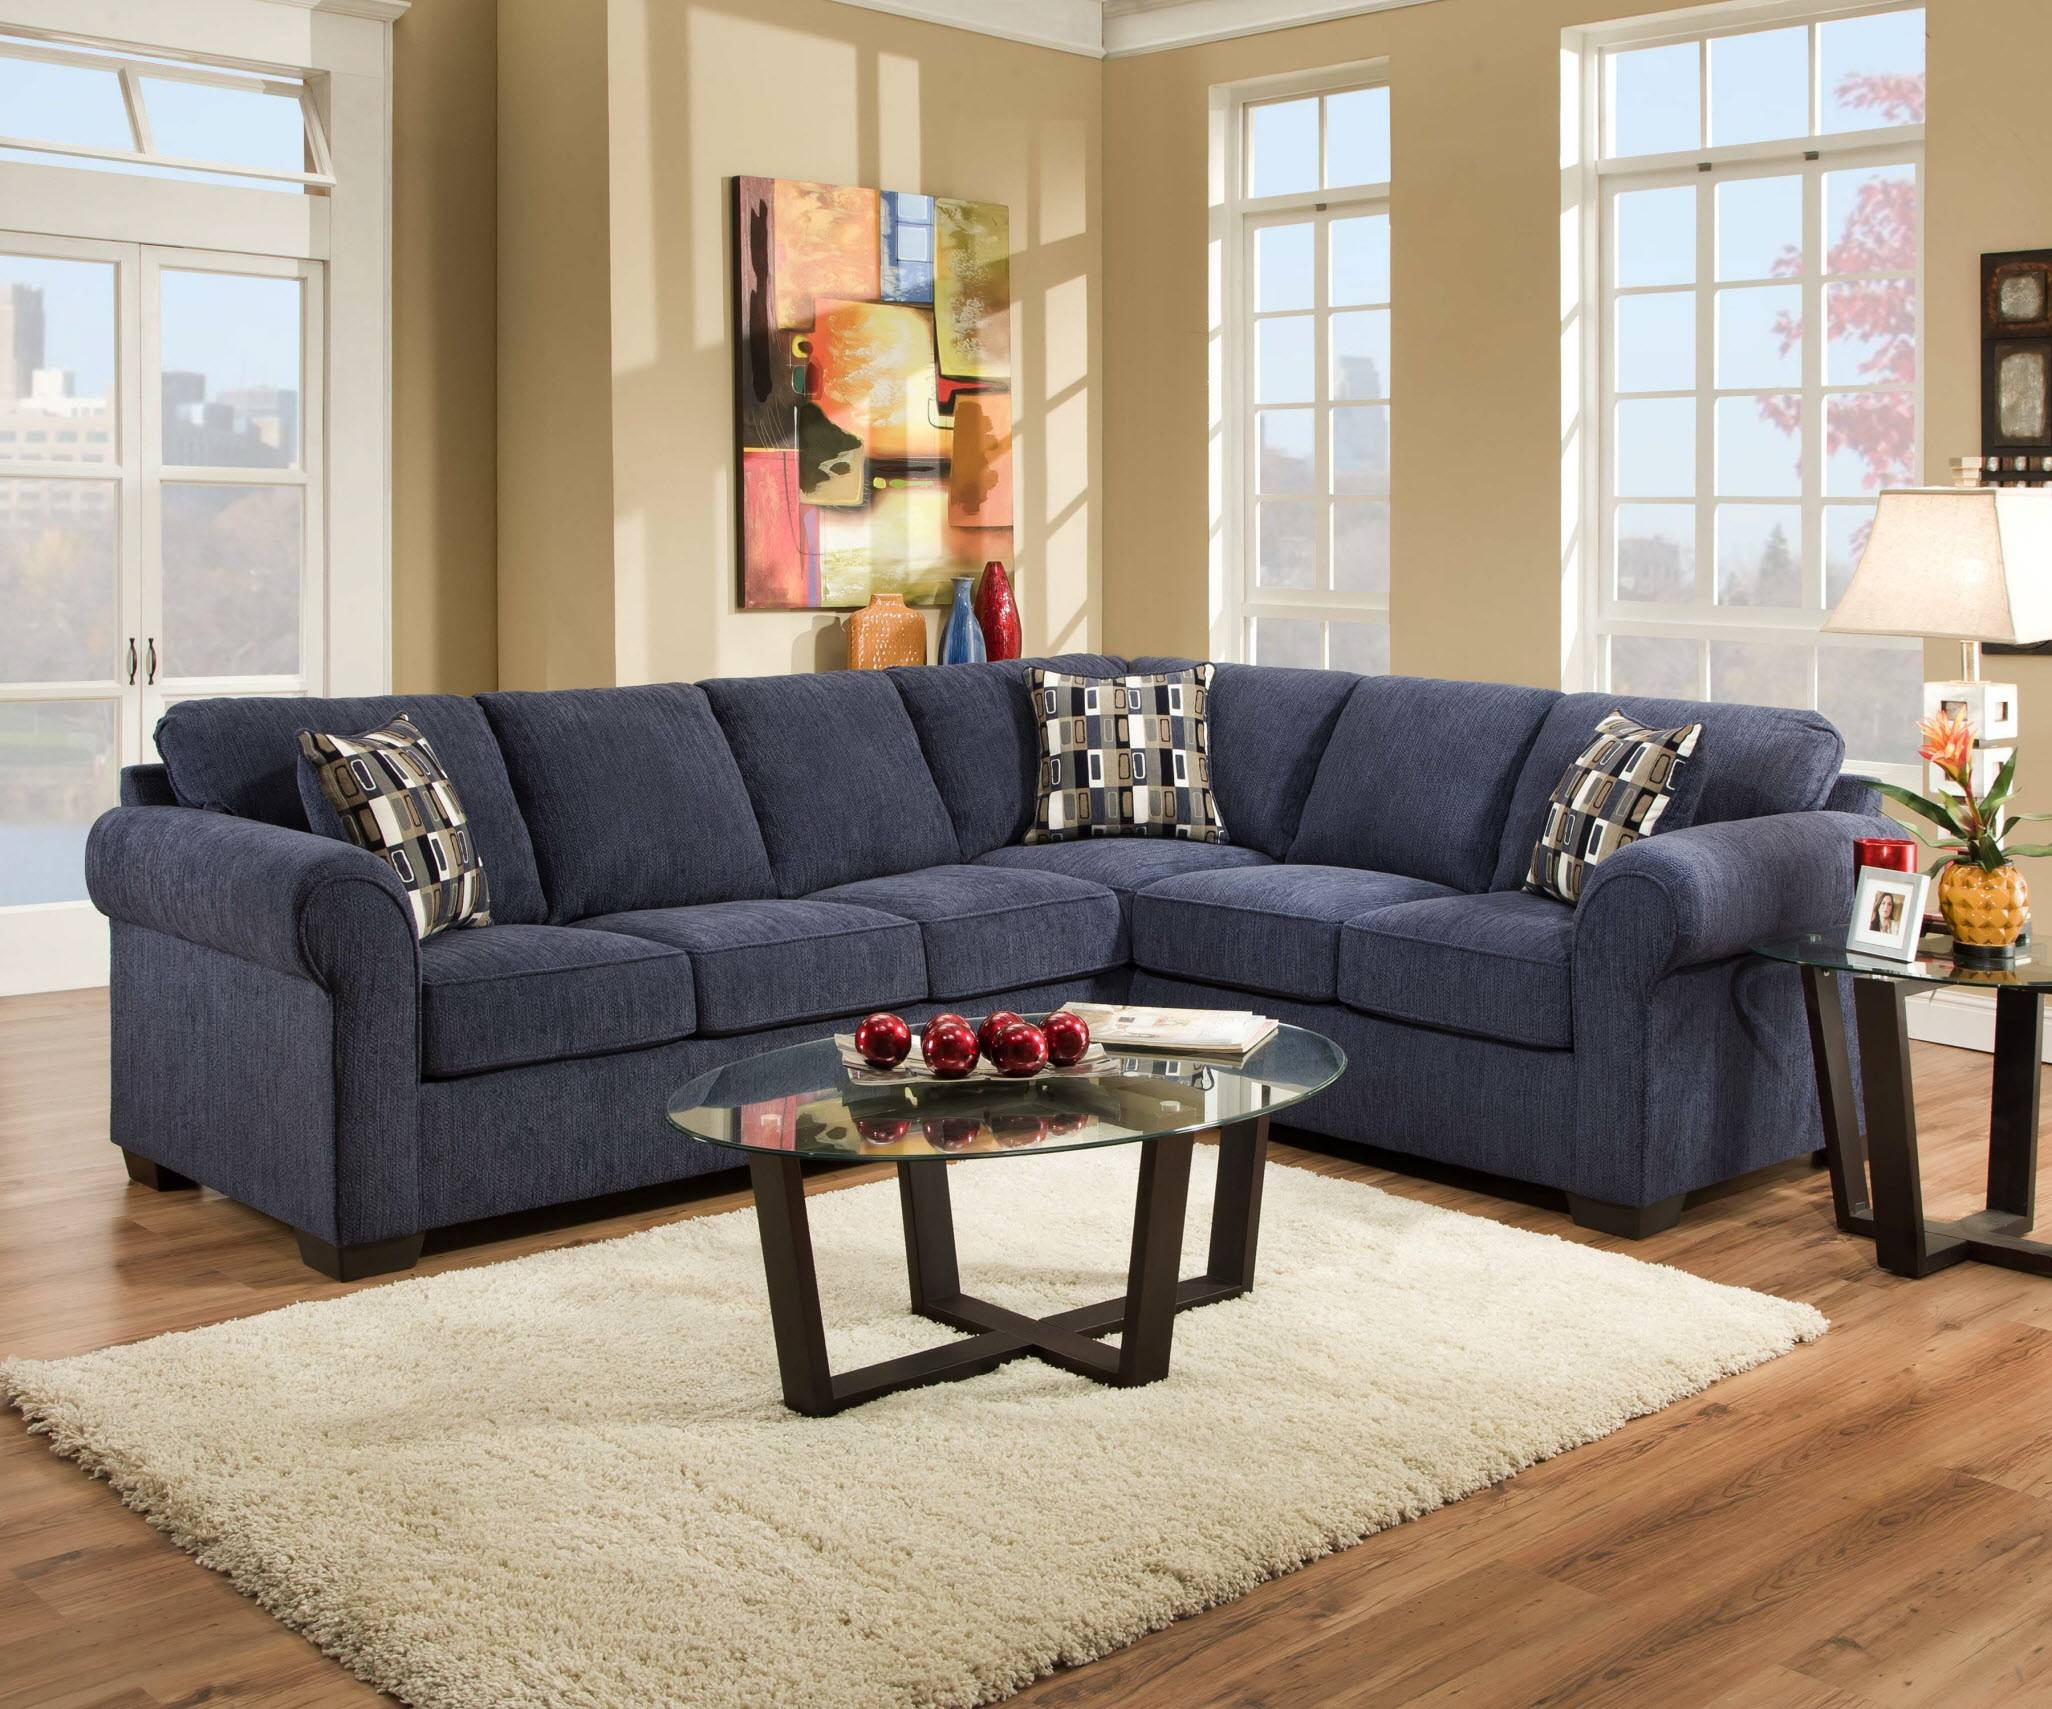 Download Project Ideas Dark Blue Sofas | Allconstructionchemicals for Dark Blue Sofas (Image 9 of 30)